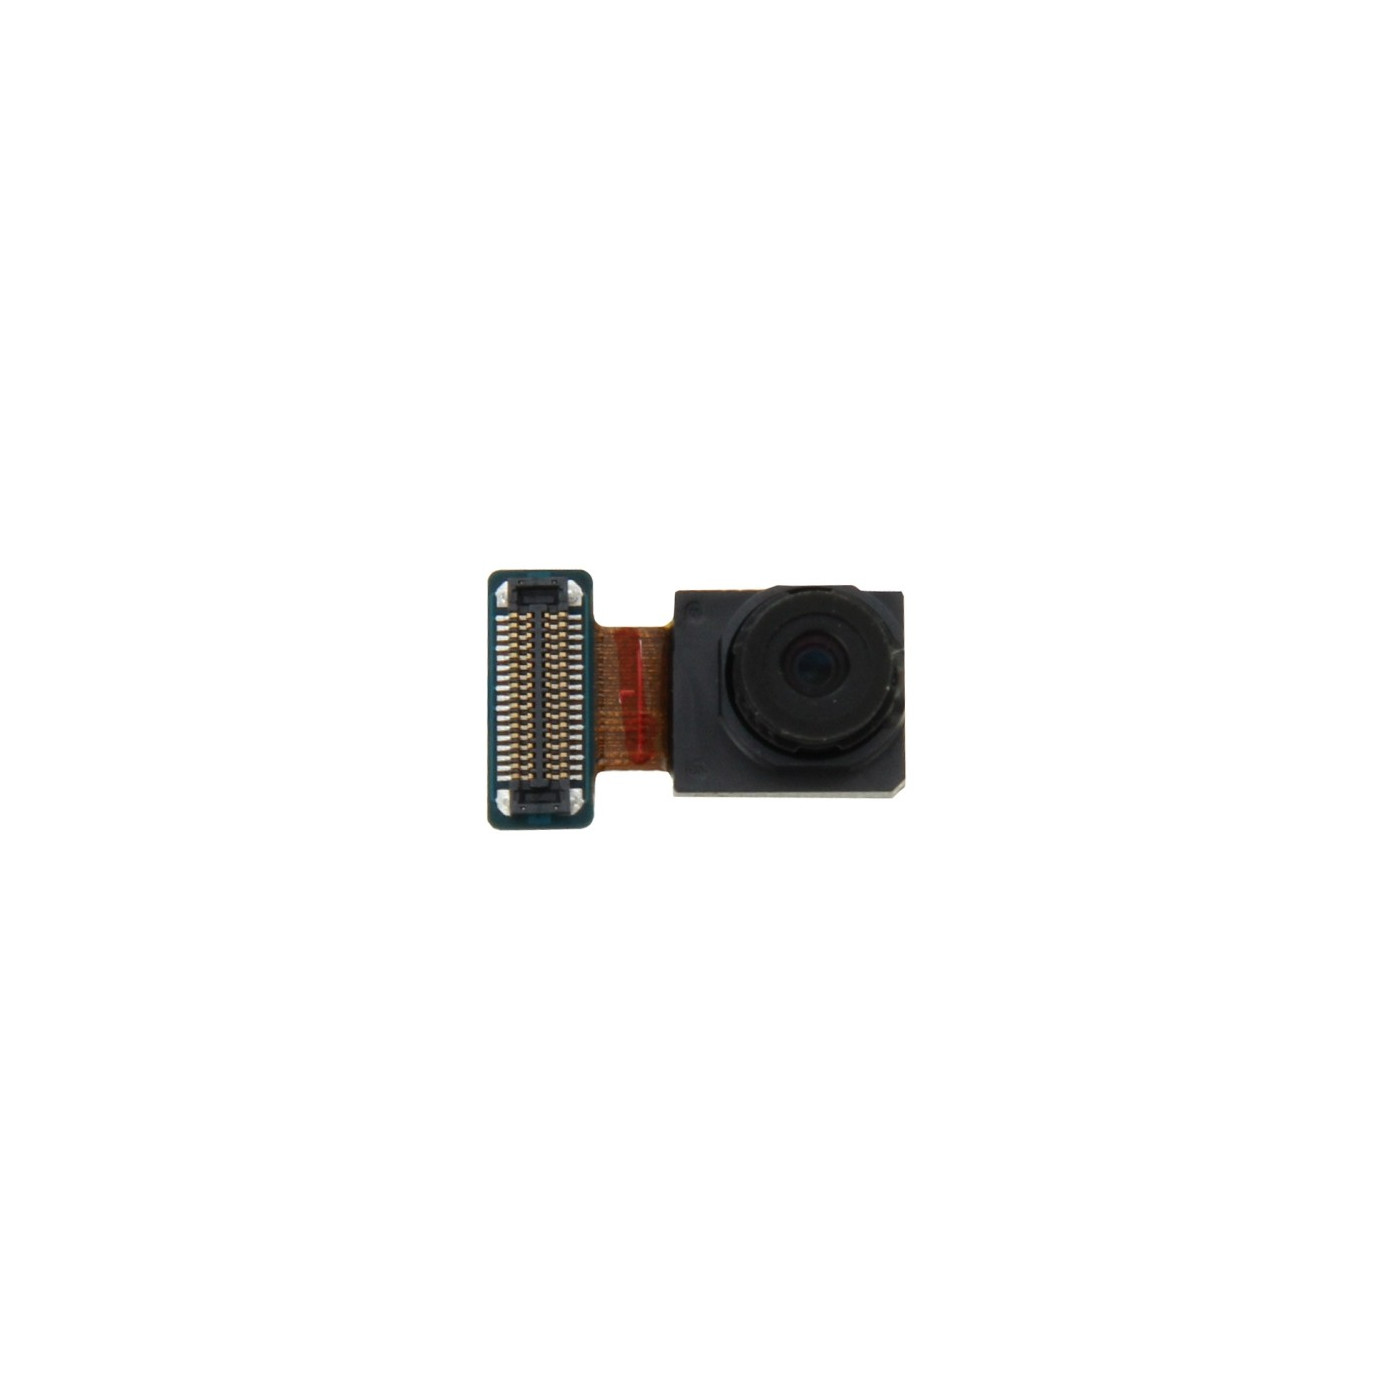 Camera front camera for Samsung Galaxy S6 Edge G925 front flat flex